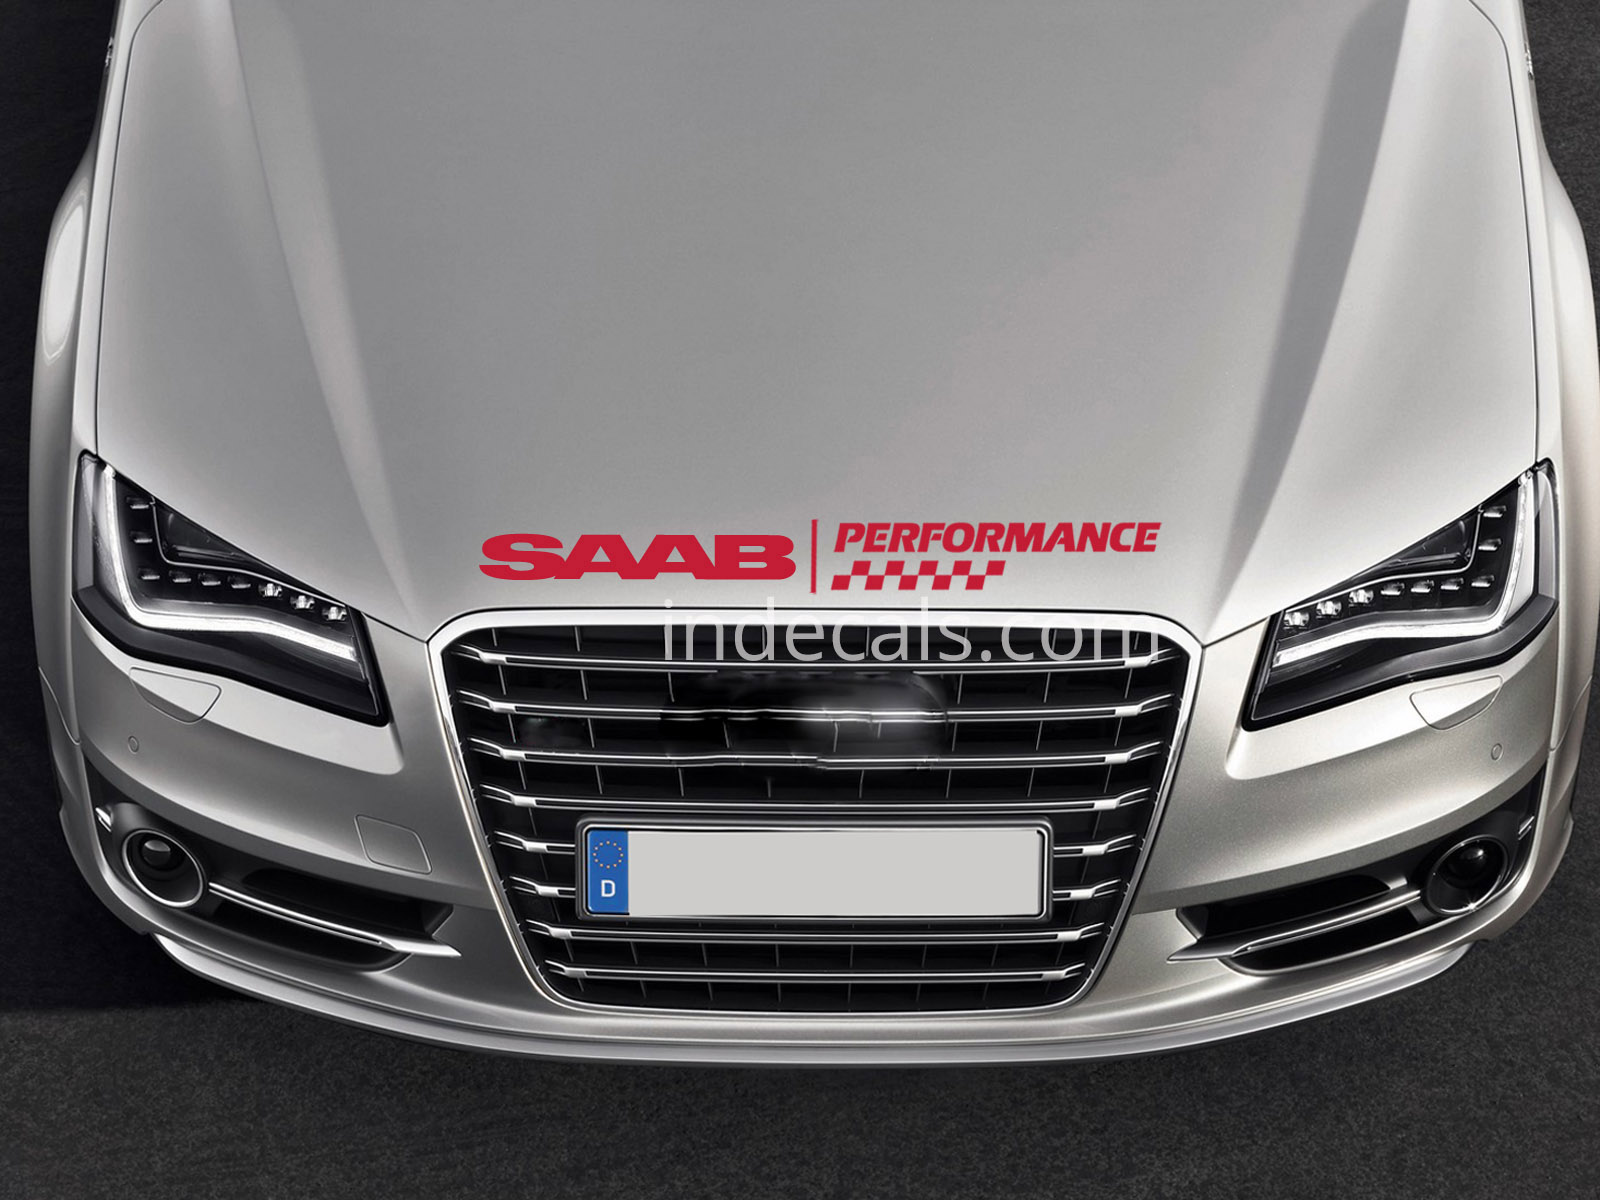 1 x Saab Performance Sticker for Bonnet - Red